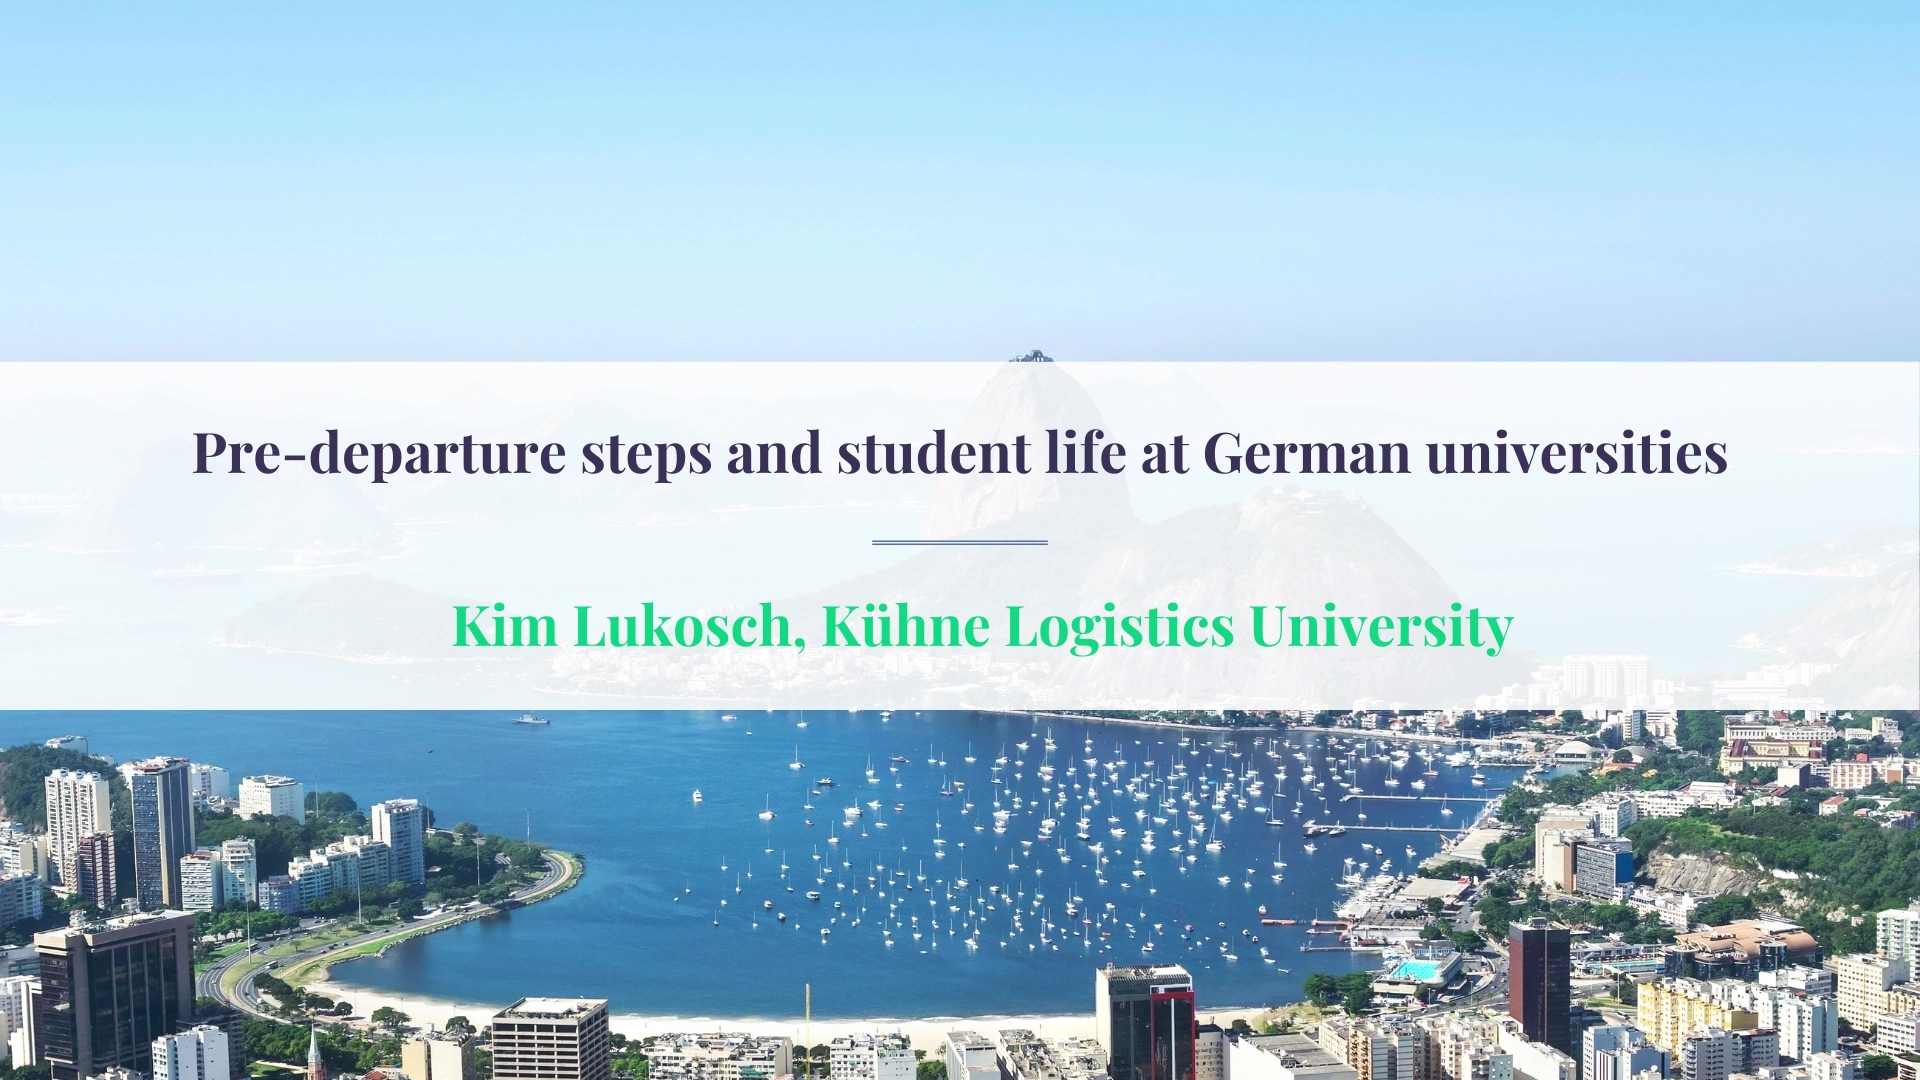 ECIE Americas Pre-departure steps and student life at German universities